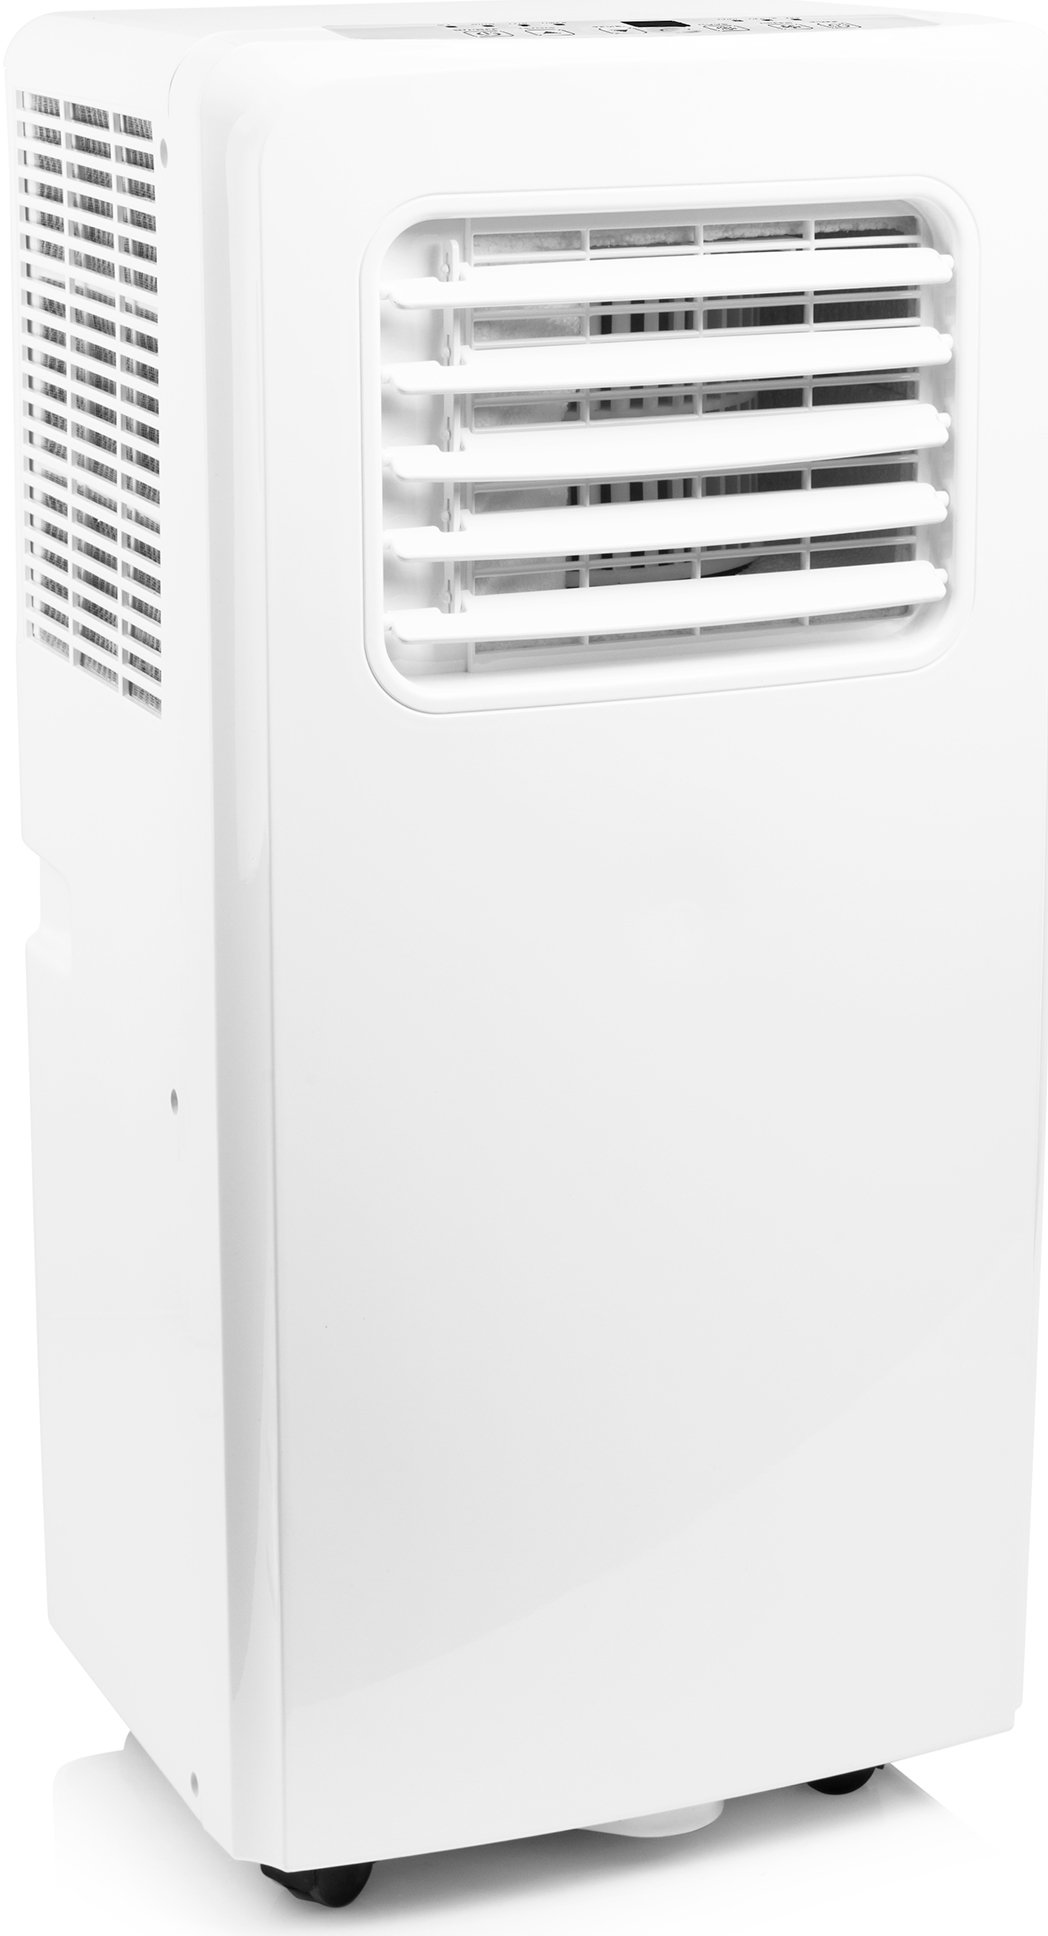 Goedkope Airco Tristar Ac 5477 Airconditioner Op Ventilator Expert Nl Frank